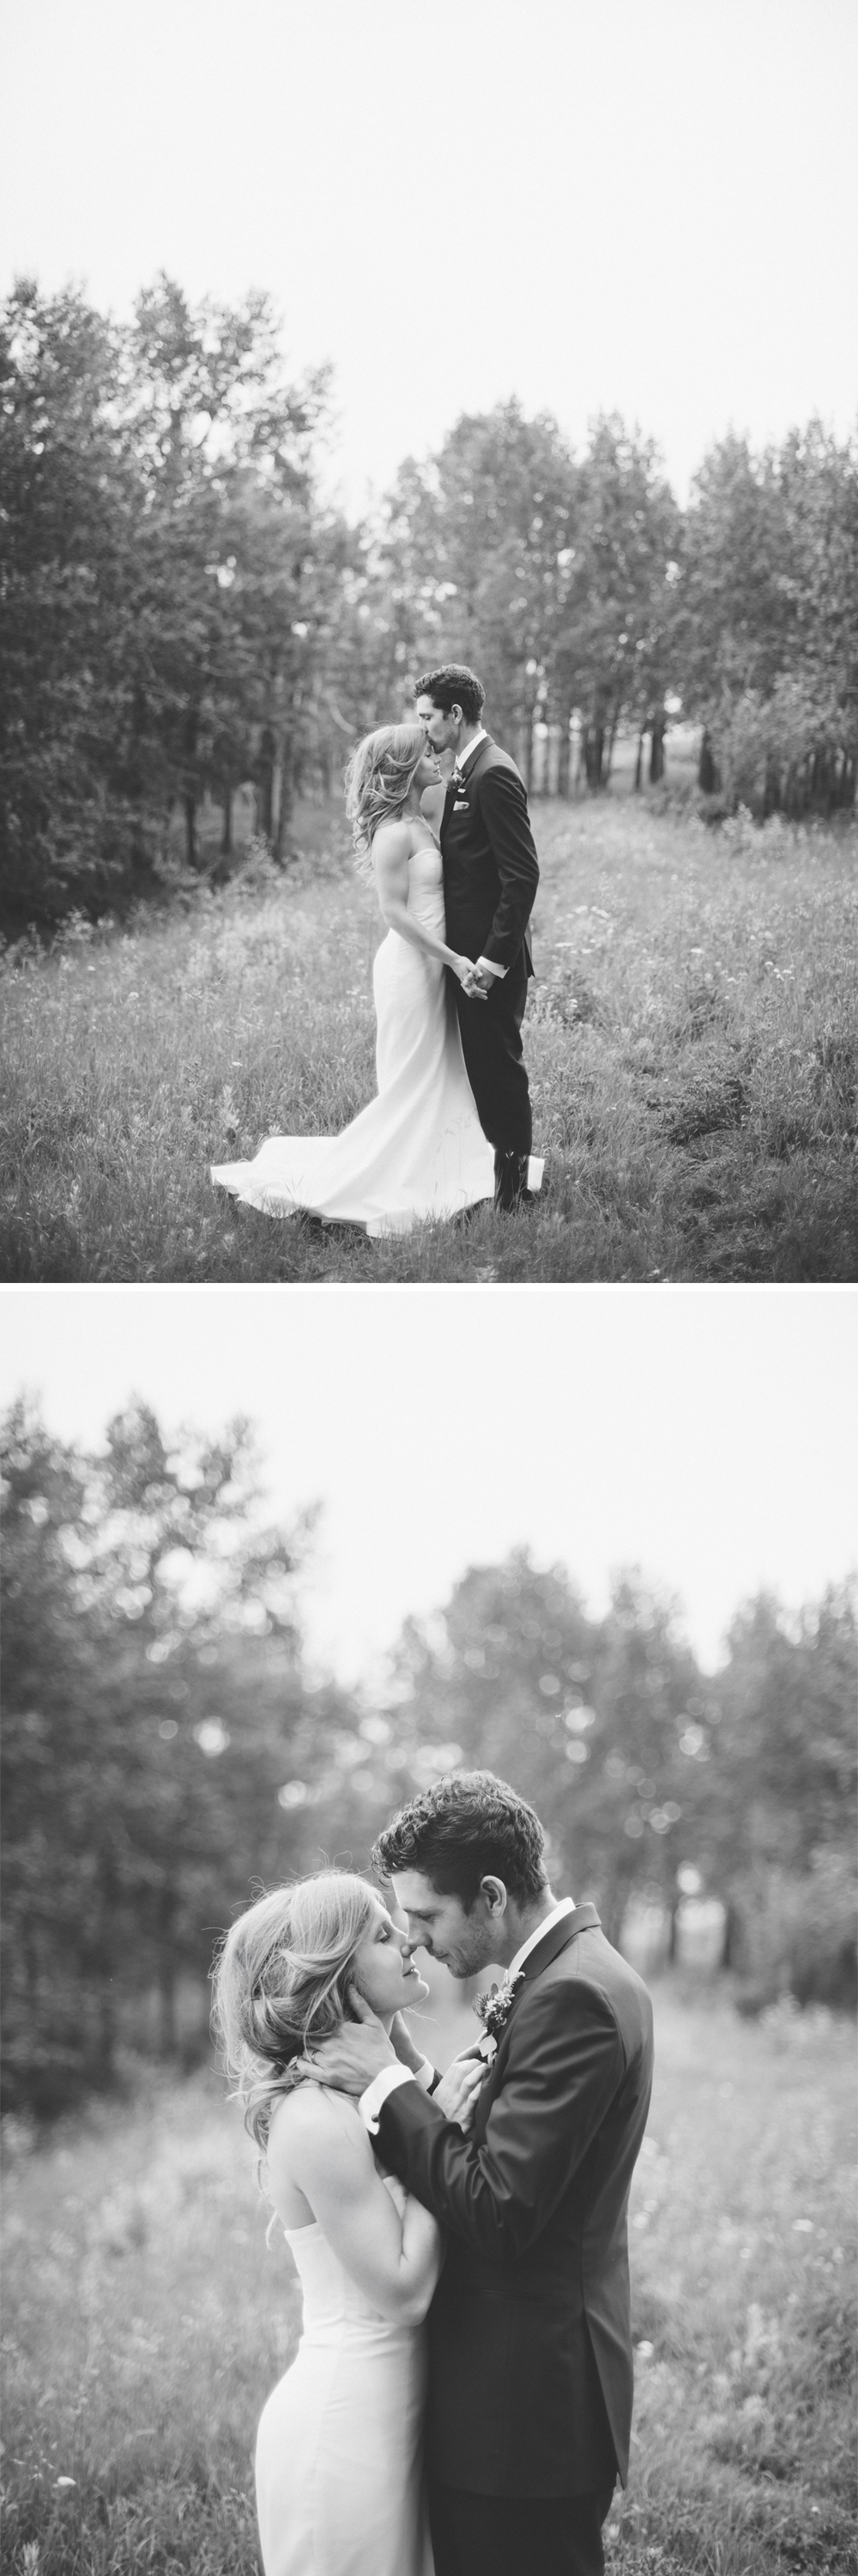 Calgary Wedding Photographer 17